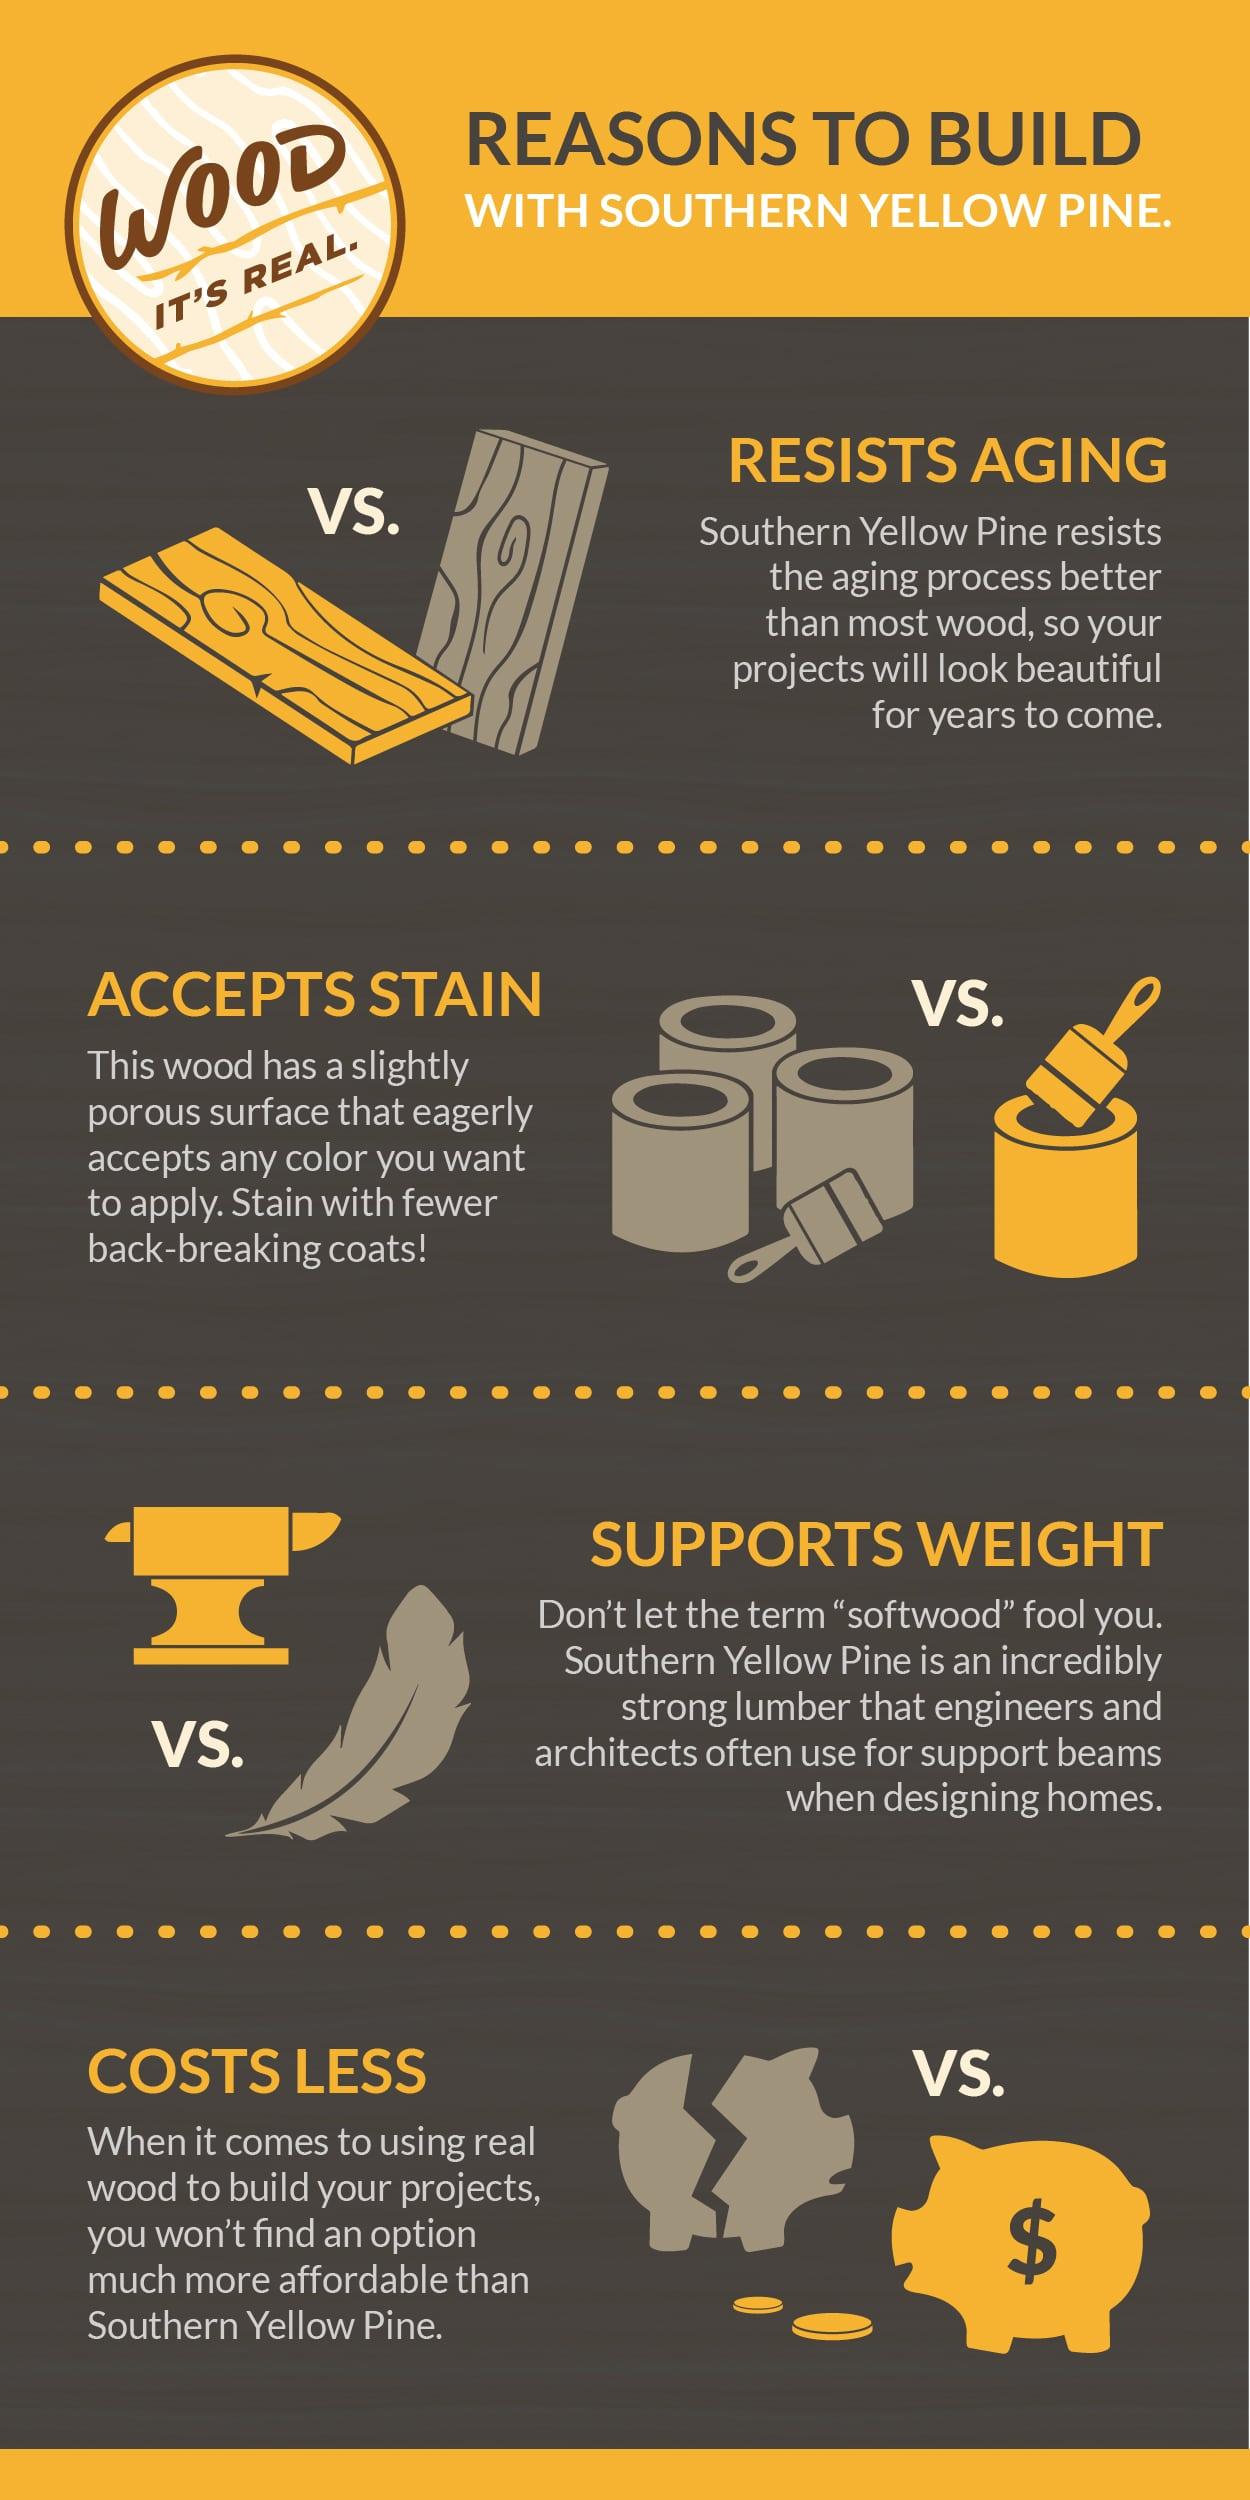 reasons to build with SYP infographic